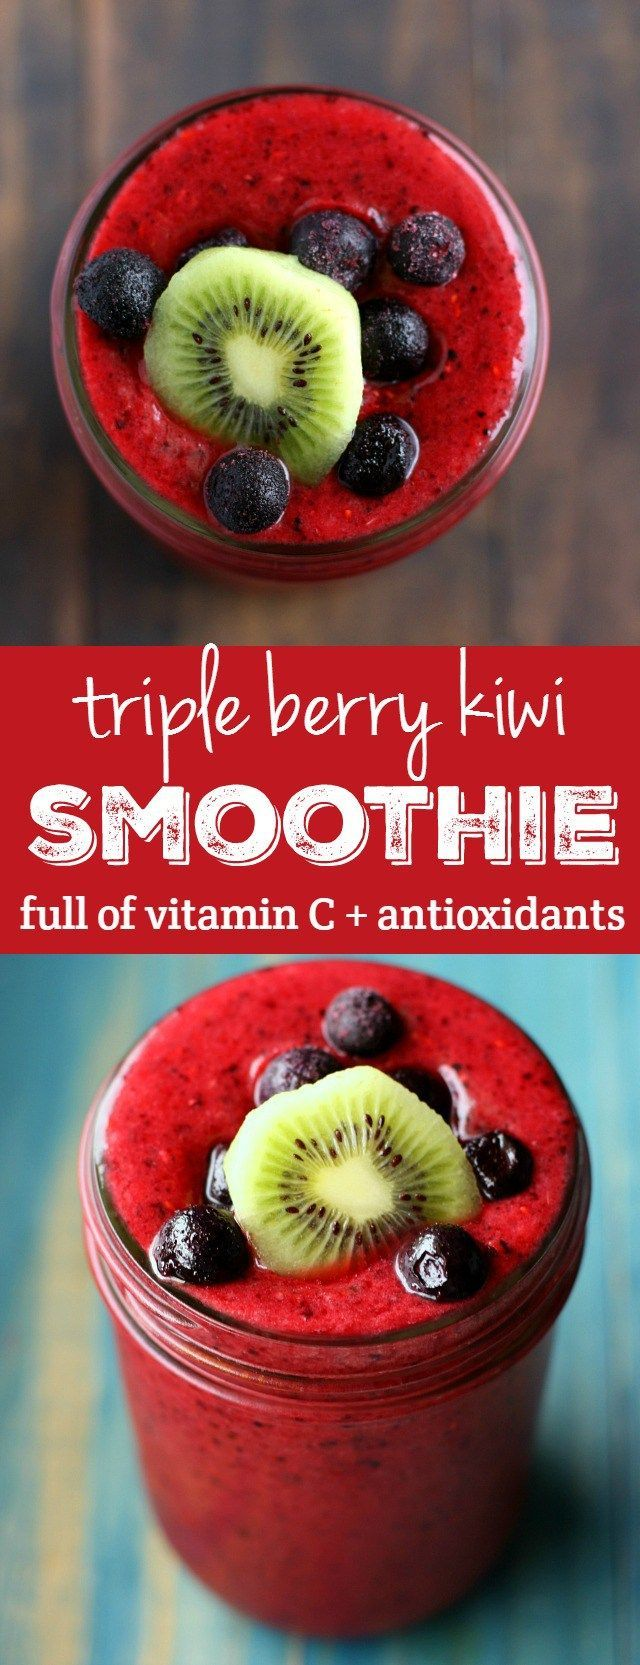 This triple berry smoothie is full of antioxidants and vitamins to help keep you healthy this winter!